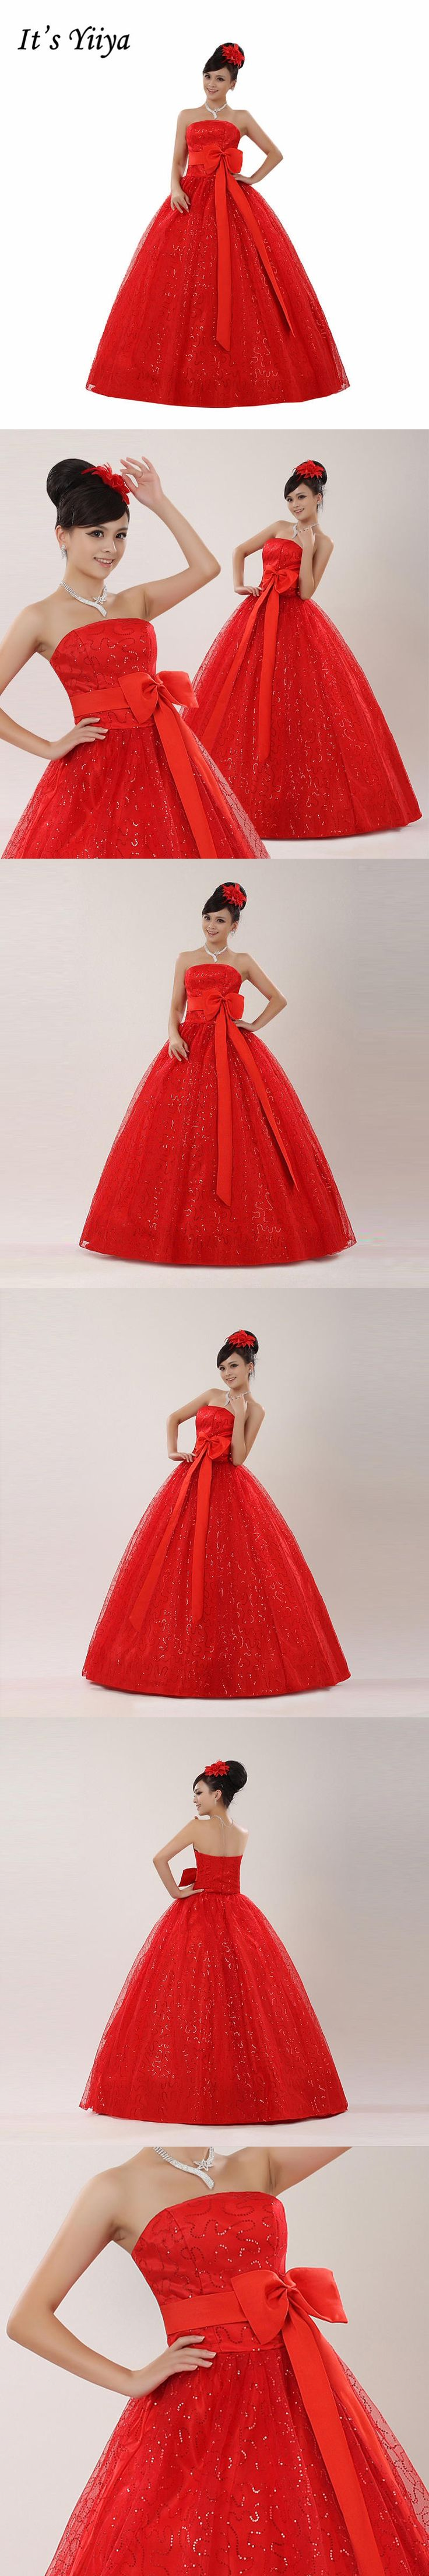 Free Shipping Real Photo Plus Size Bow Strapless Wedding Dresses Red Cheap Bride Gowns Frocks Vestidos De Novia XN081